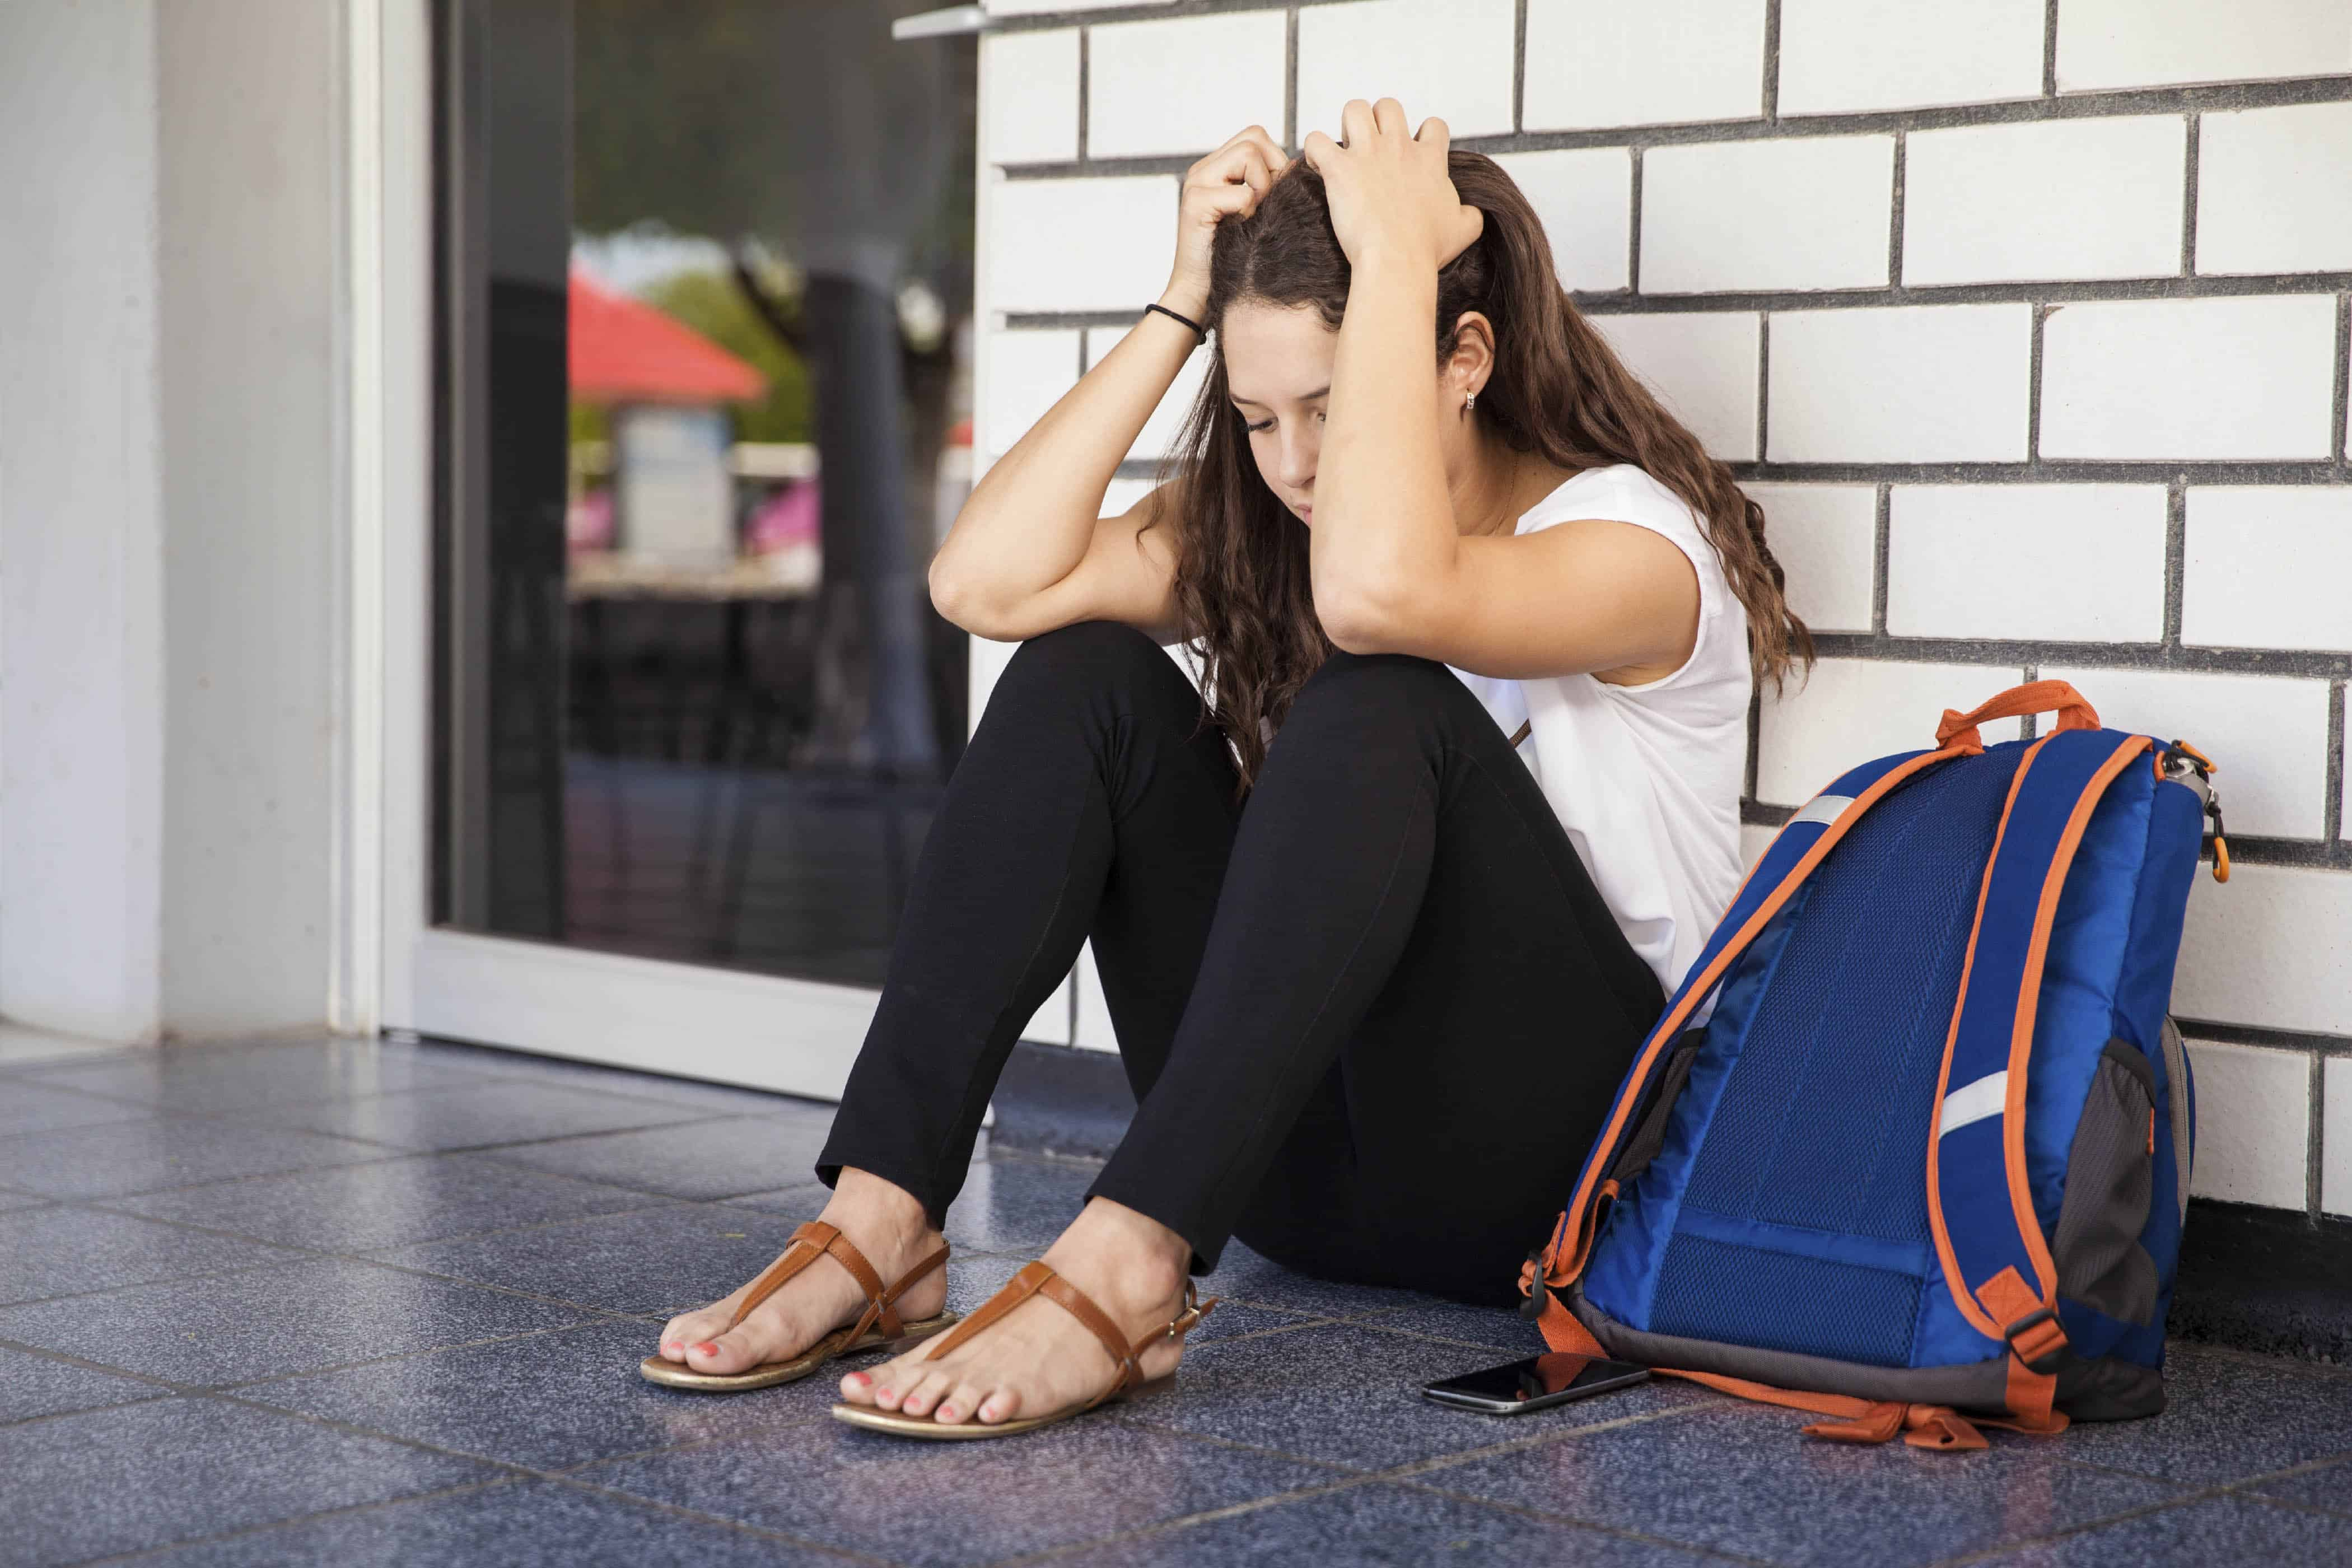 College student sitting in the hallway and feeling overwhelmed and stressed because of school